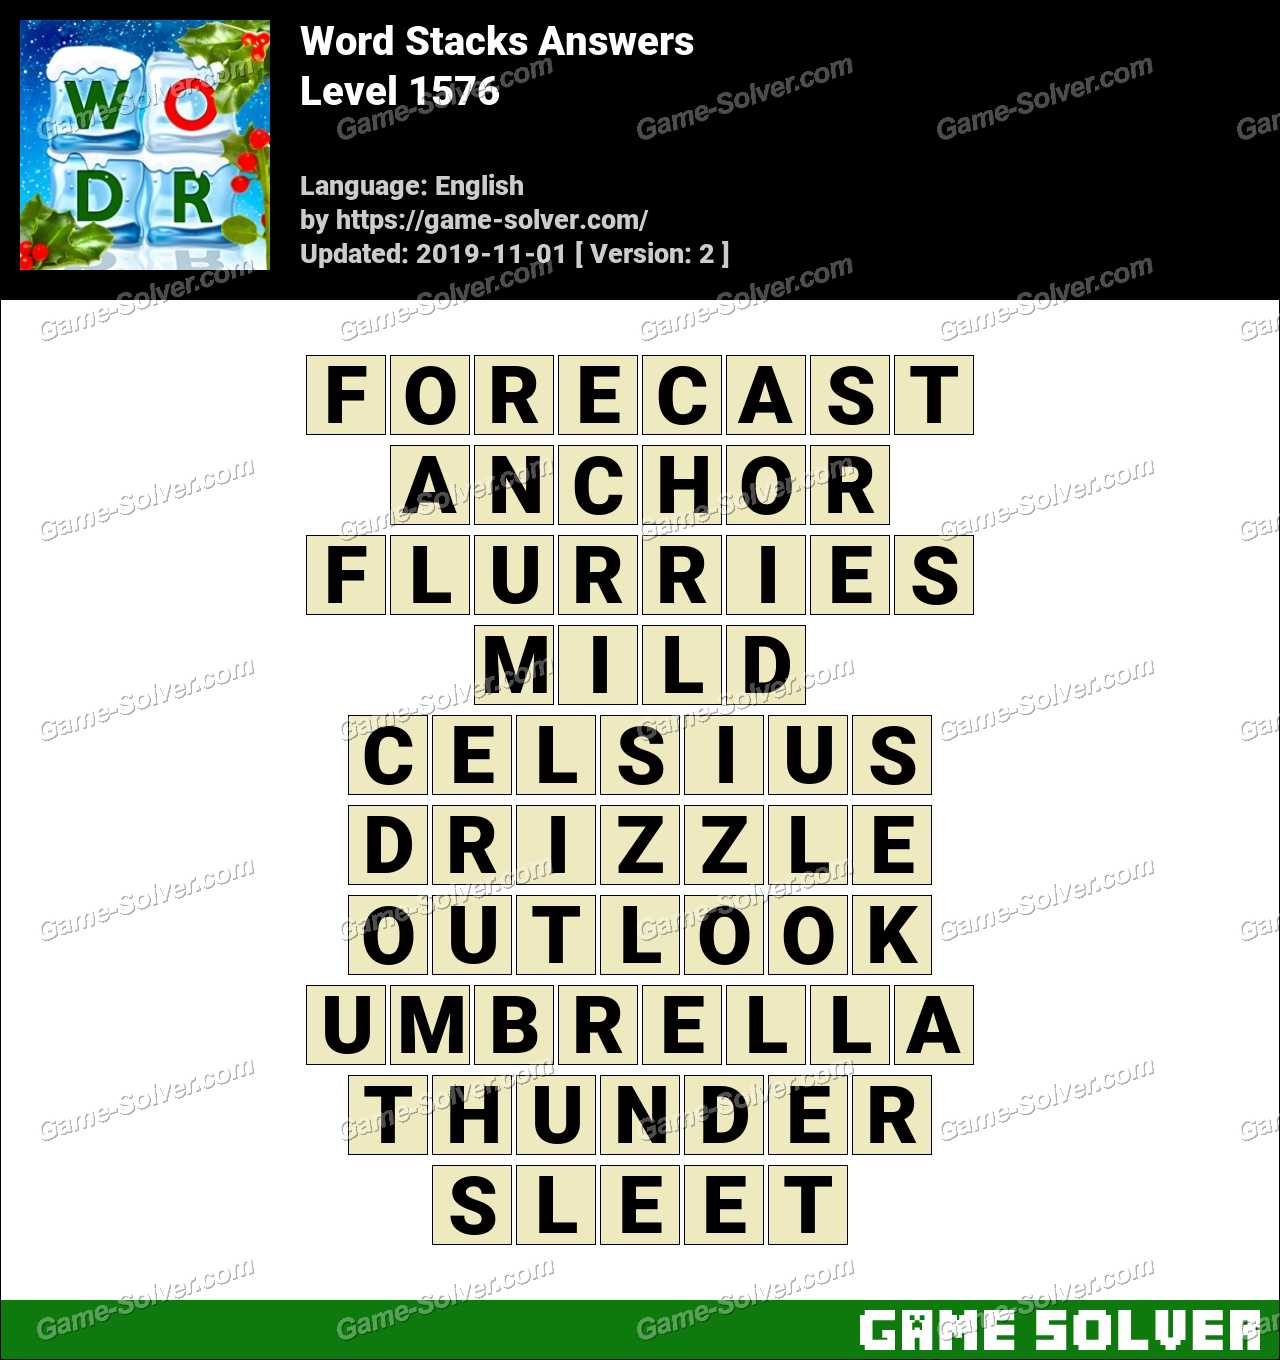 Word Stacks Level 1576 Answers